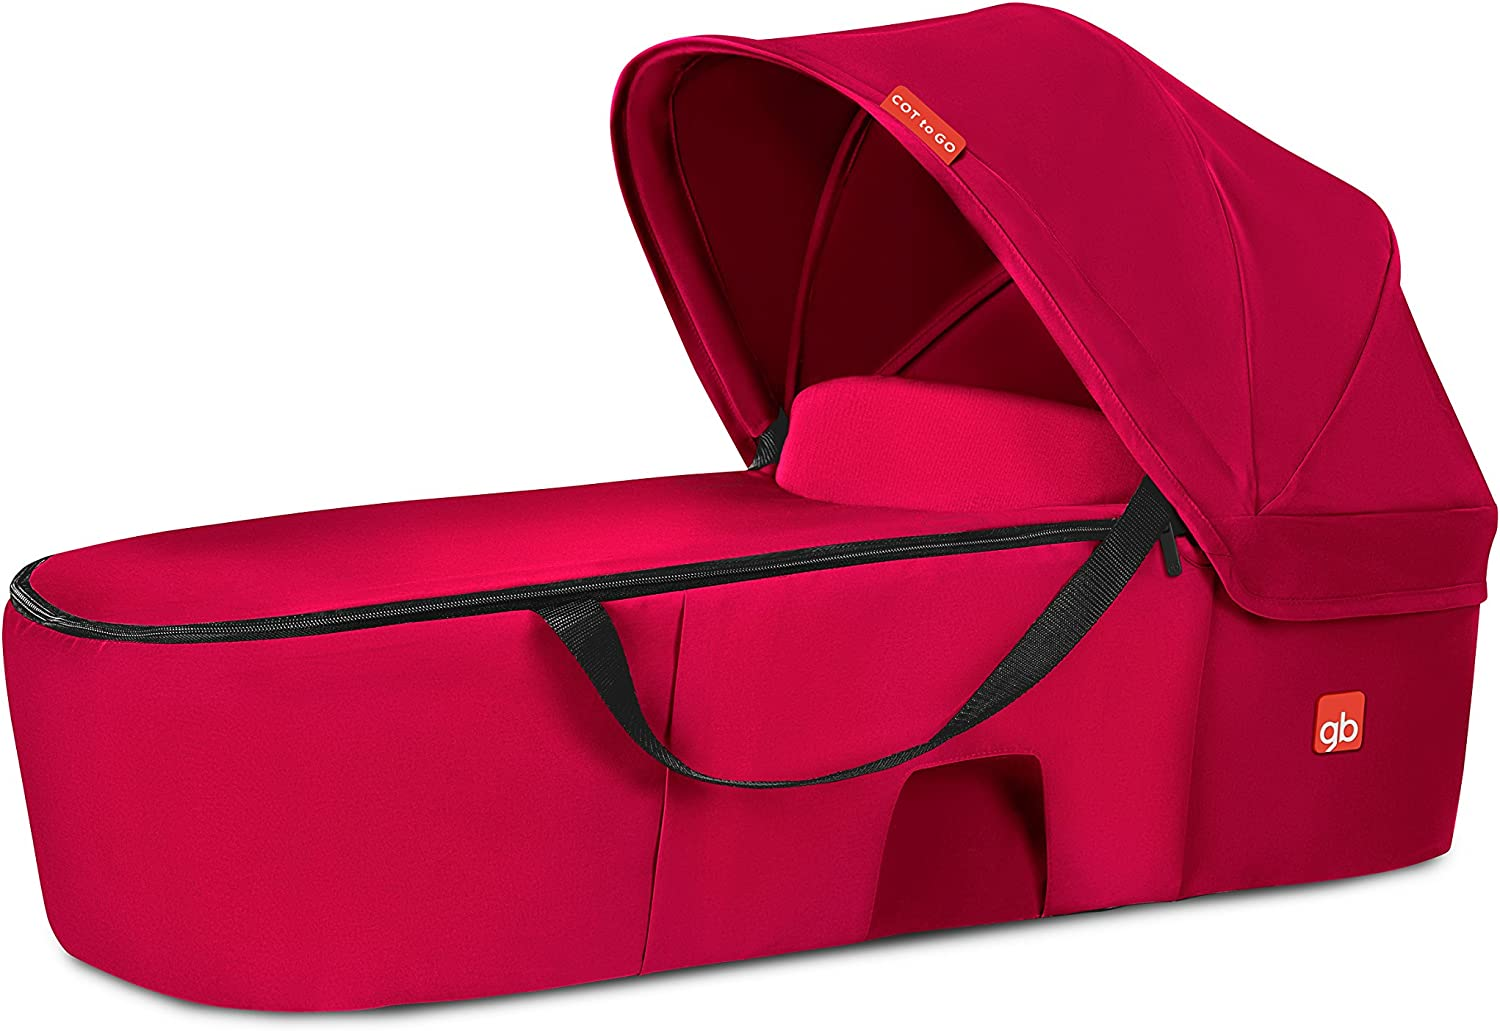 gb Gold para sillas de paseo Qbit+ y Pockit+ Capazo Cot to Go Cherry Red